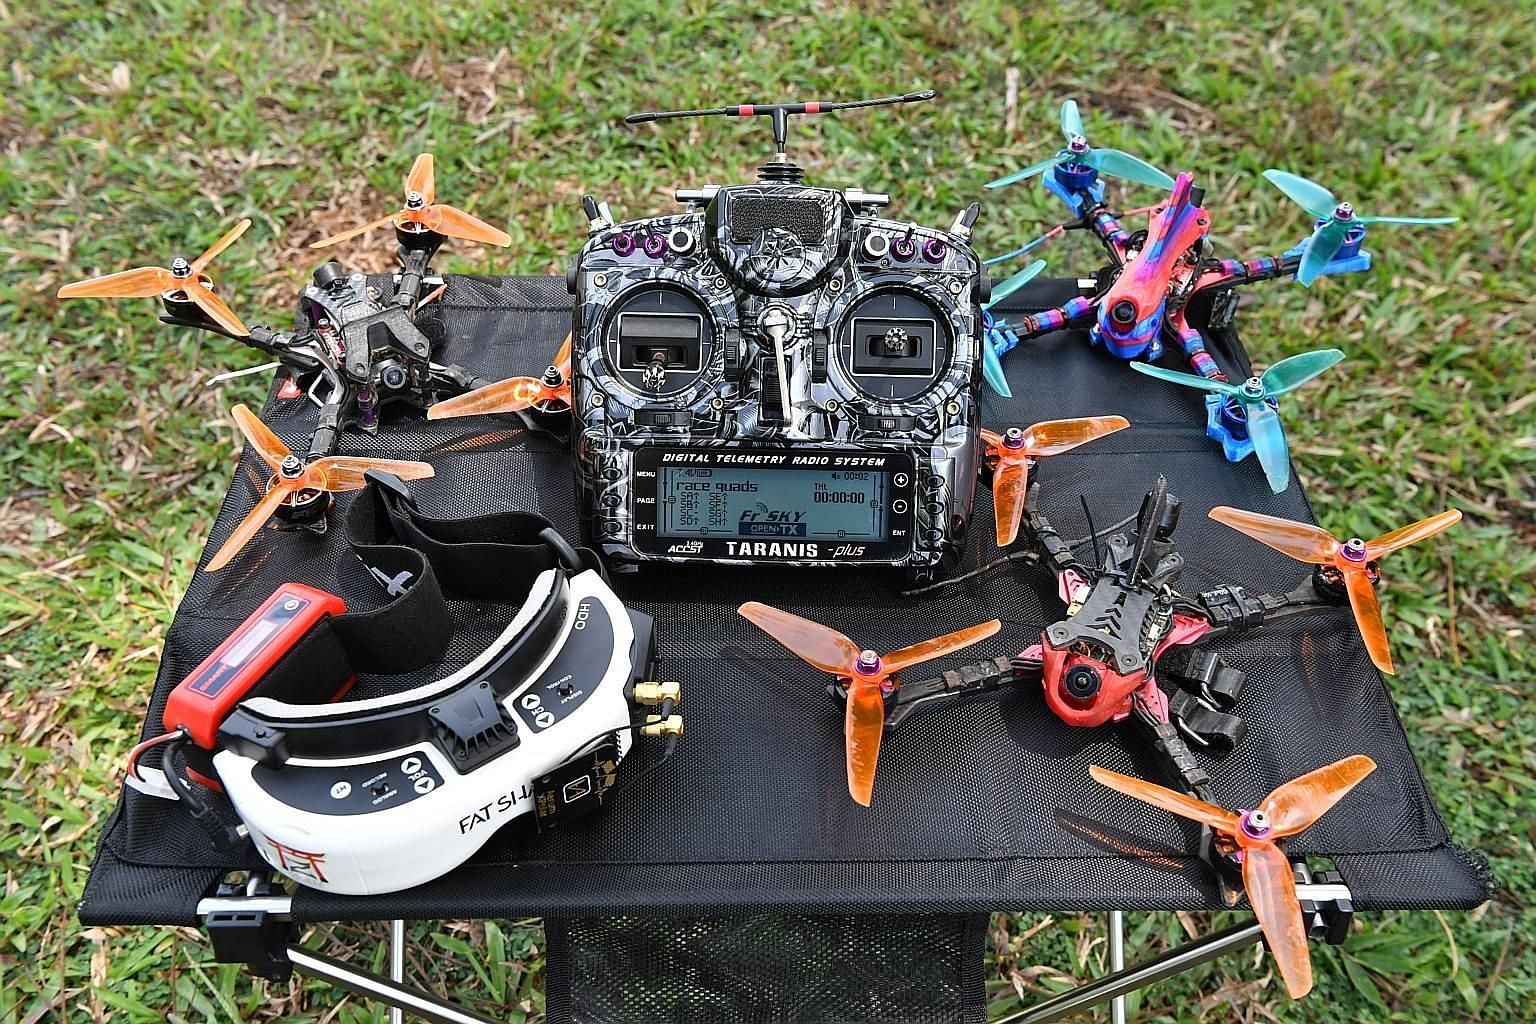 Depending on how quickly one takes to the sport and how often one crashes, drone racers in Singapore spend between $3,000 and $5,000 a year on their hobby.